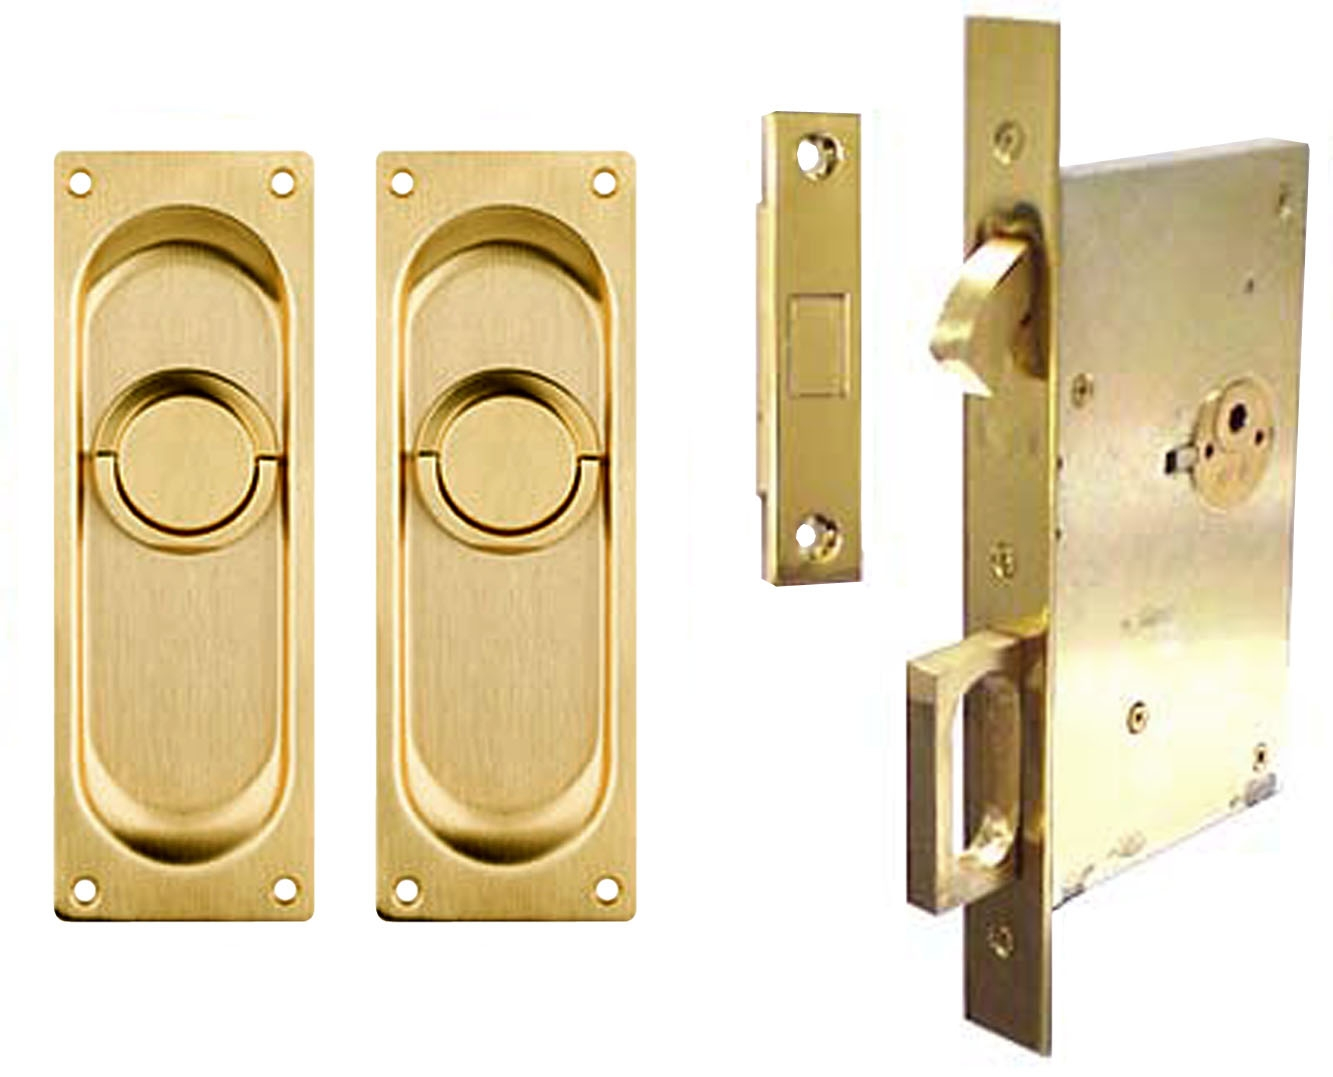 Solid Brass Pocket Door Hardware Solid Brass Pocket Door Hardware brynmawrpocketdoorlock 13331077 pixels alexis 1333 X 1077